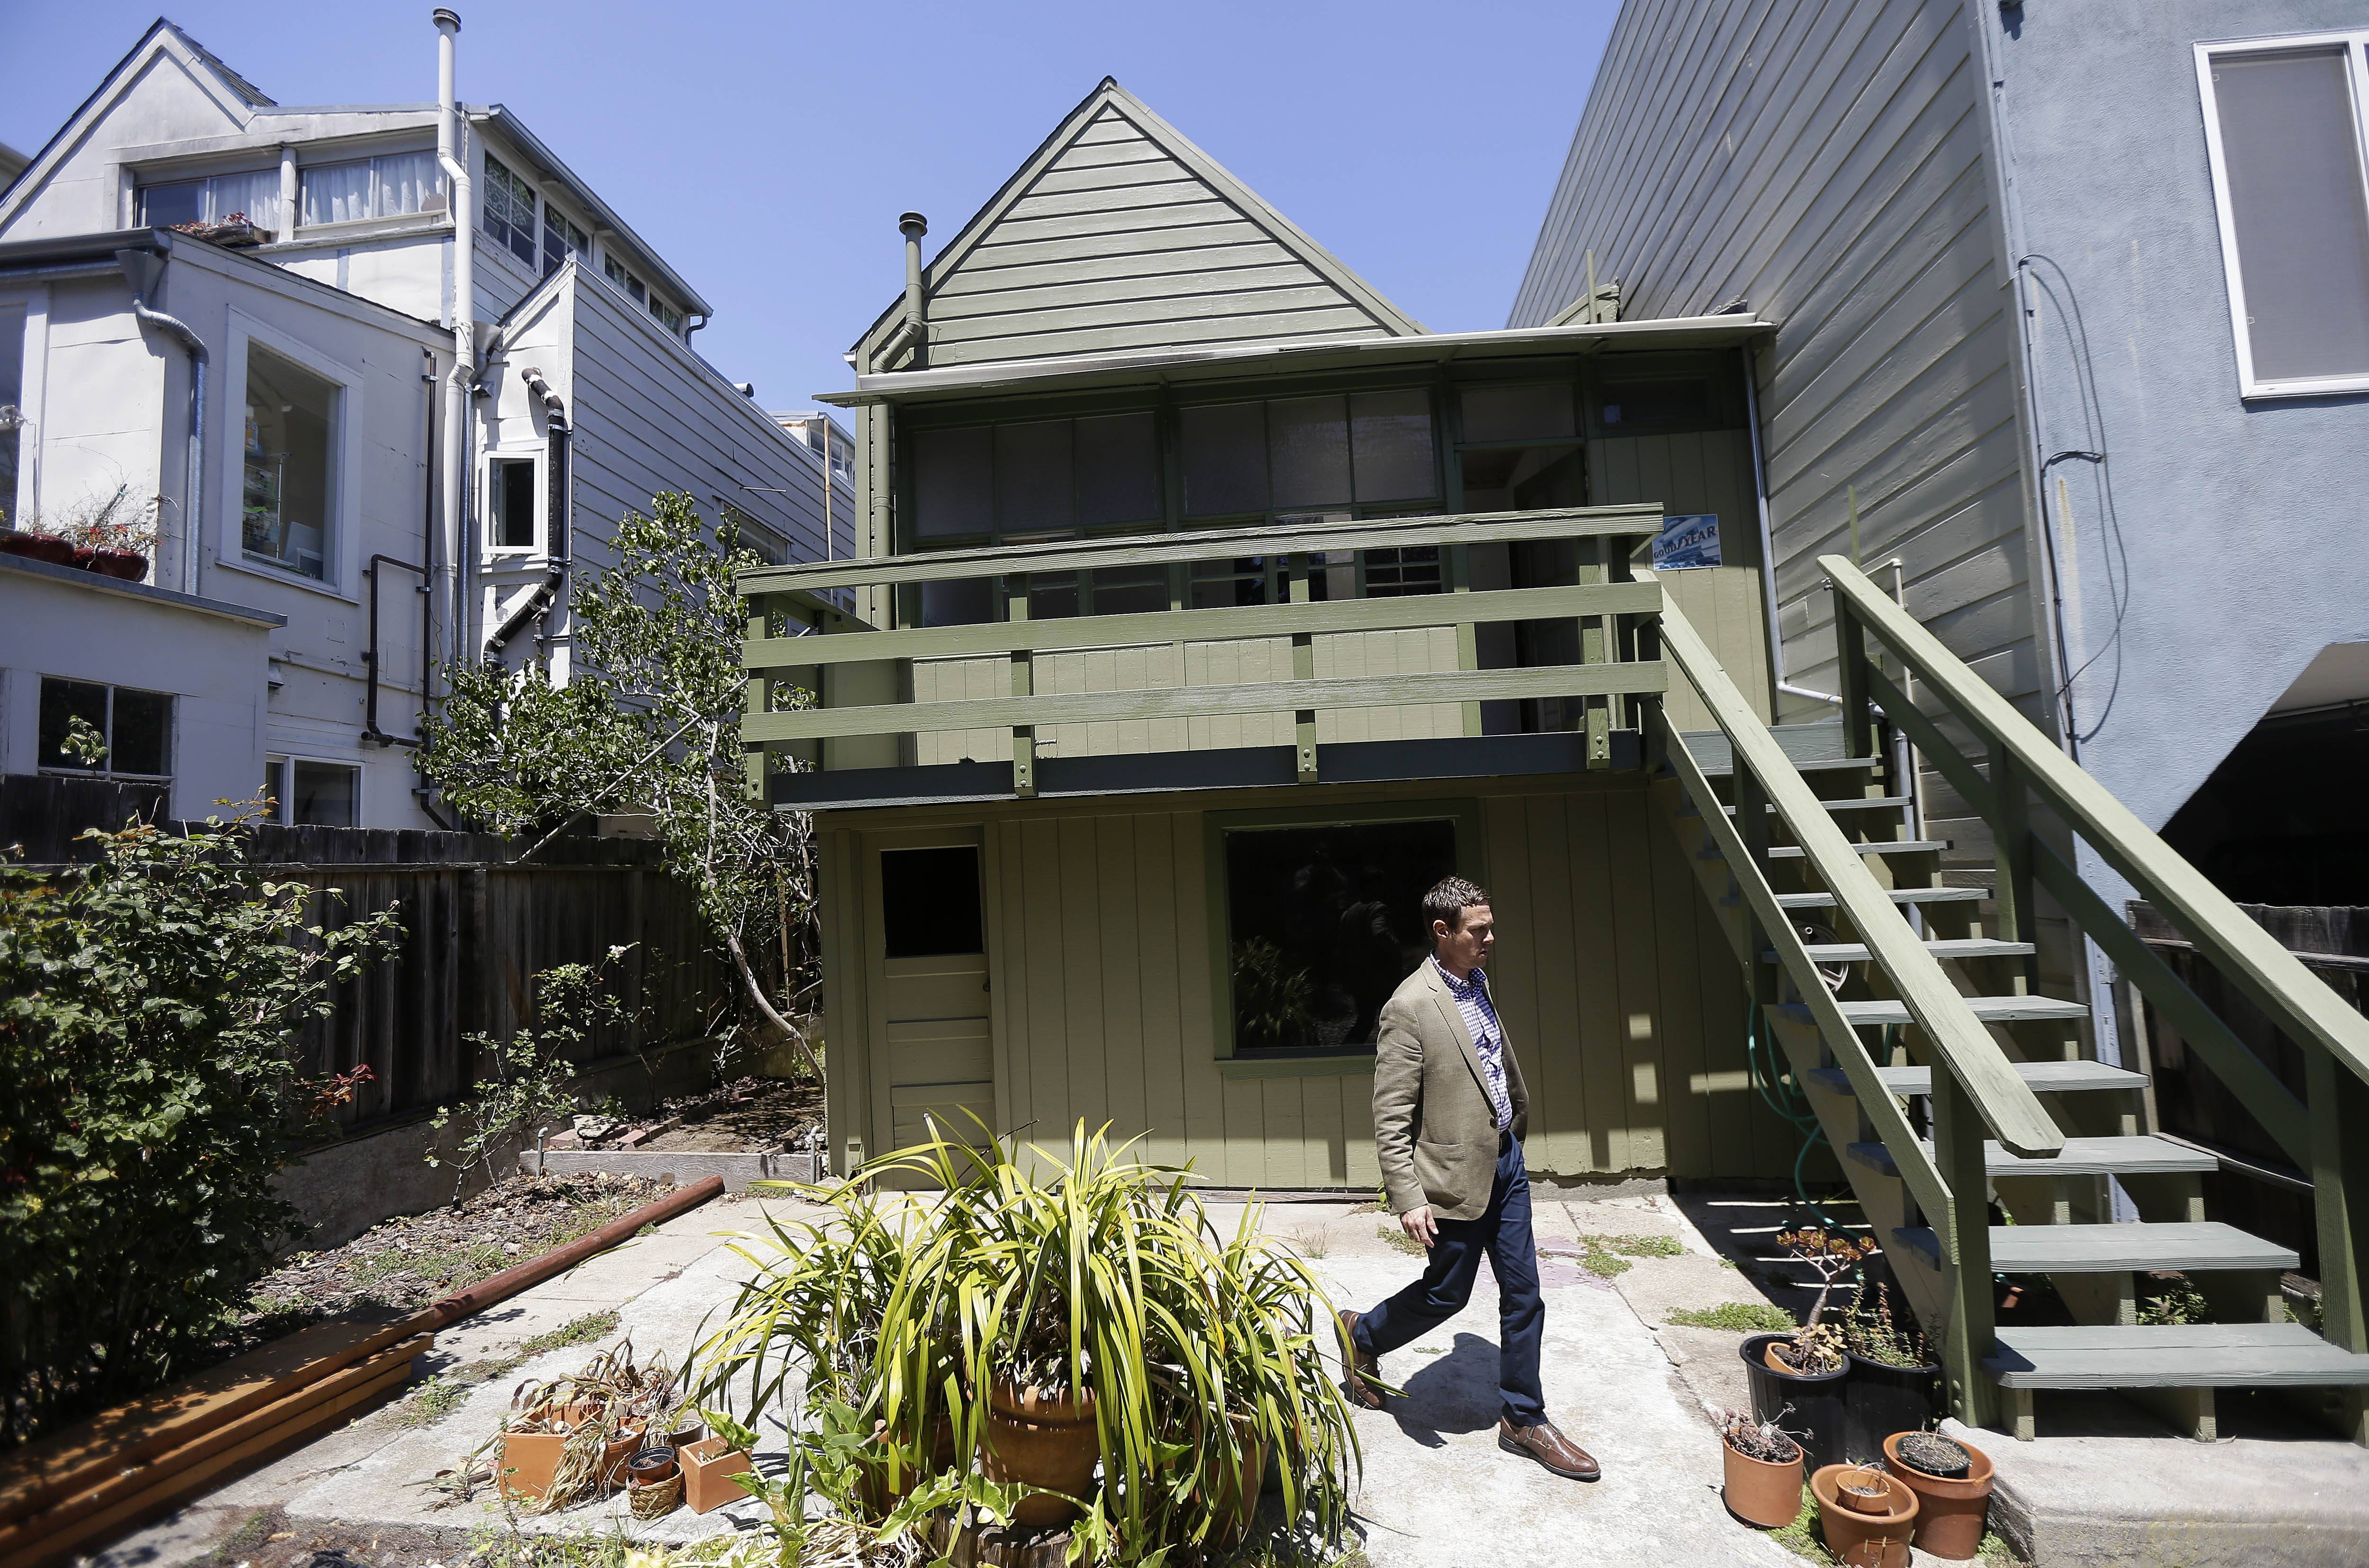 George Limperis, a realtor with Paragon Real Estate Group, walks in the backyard of a property in the Noe Valley neighborhood in San Francisco, Wednesday, July 30, 2014. In the souped-up world of San Francisco real estate, where the median selling price for homes and condominiums hit seven figures for the first time last month, the cool million that would fetch a mansion on a few acres elsewhere will now barely cover the cost of an 800-square foot starter home that needs work and may or may not include private parking.